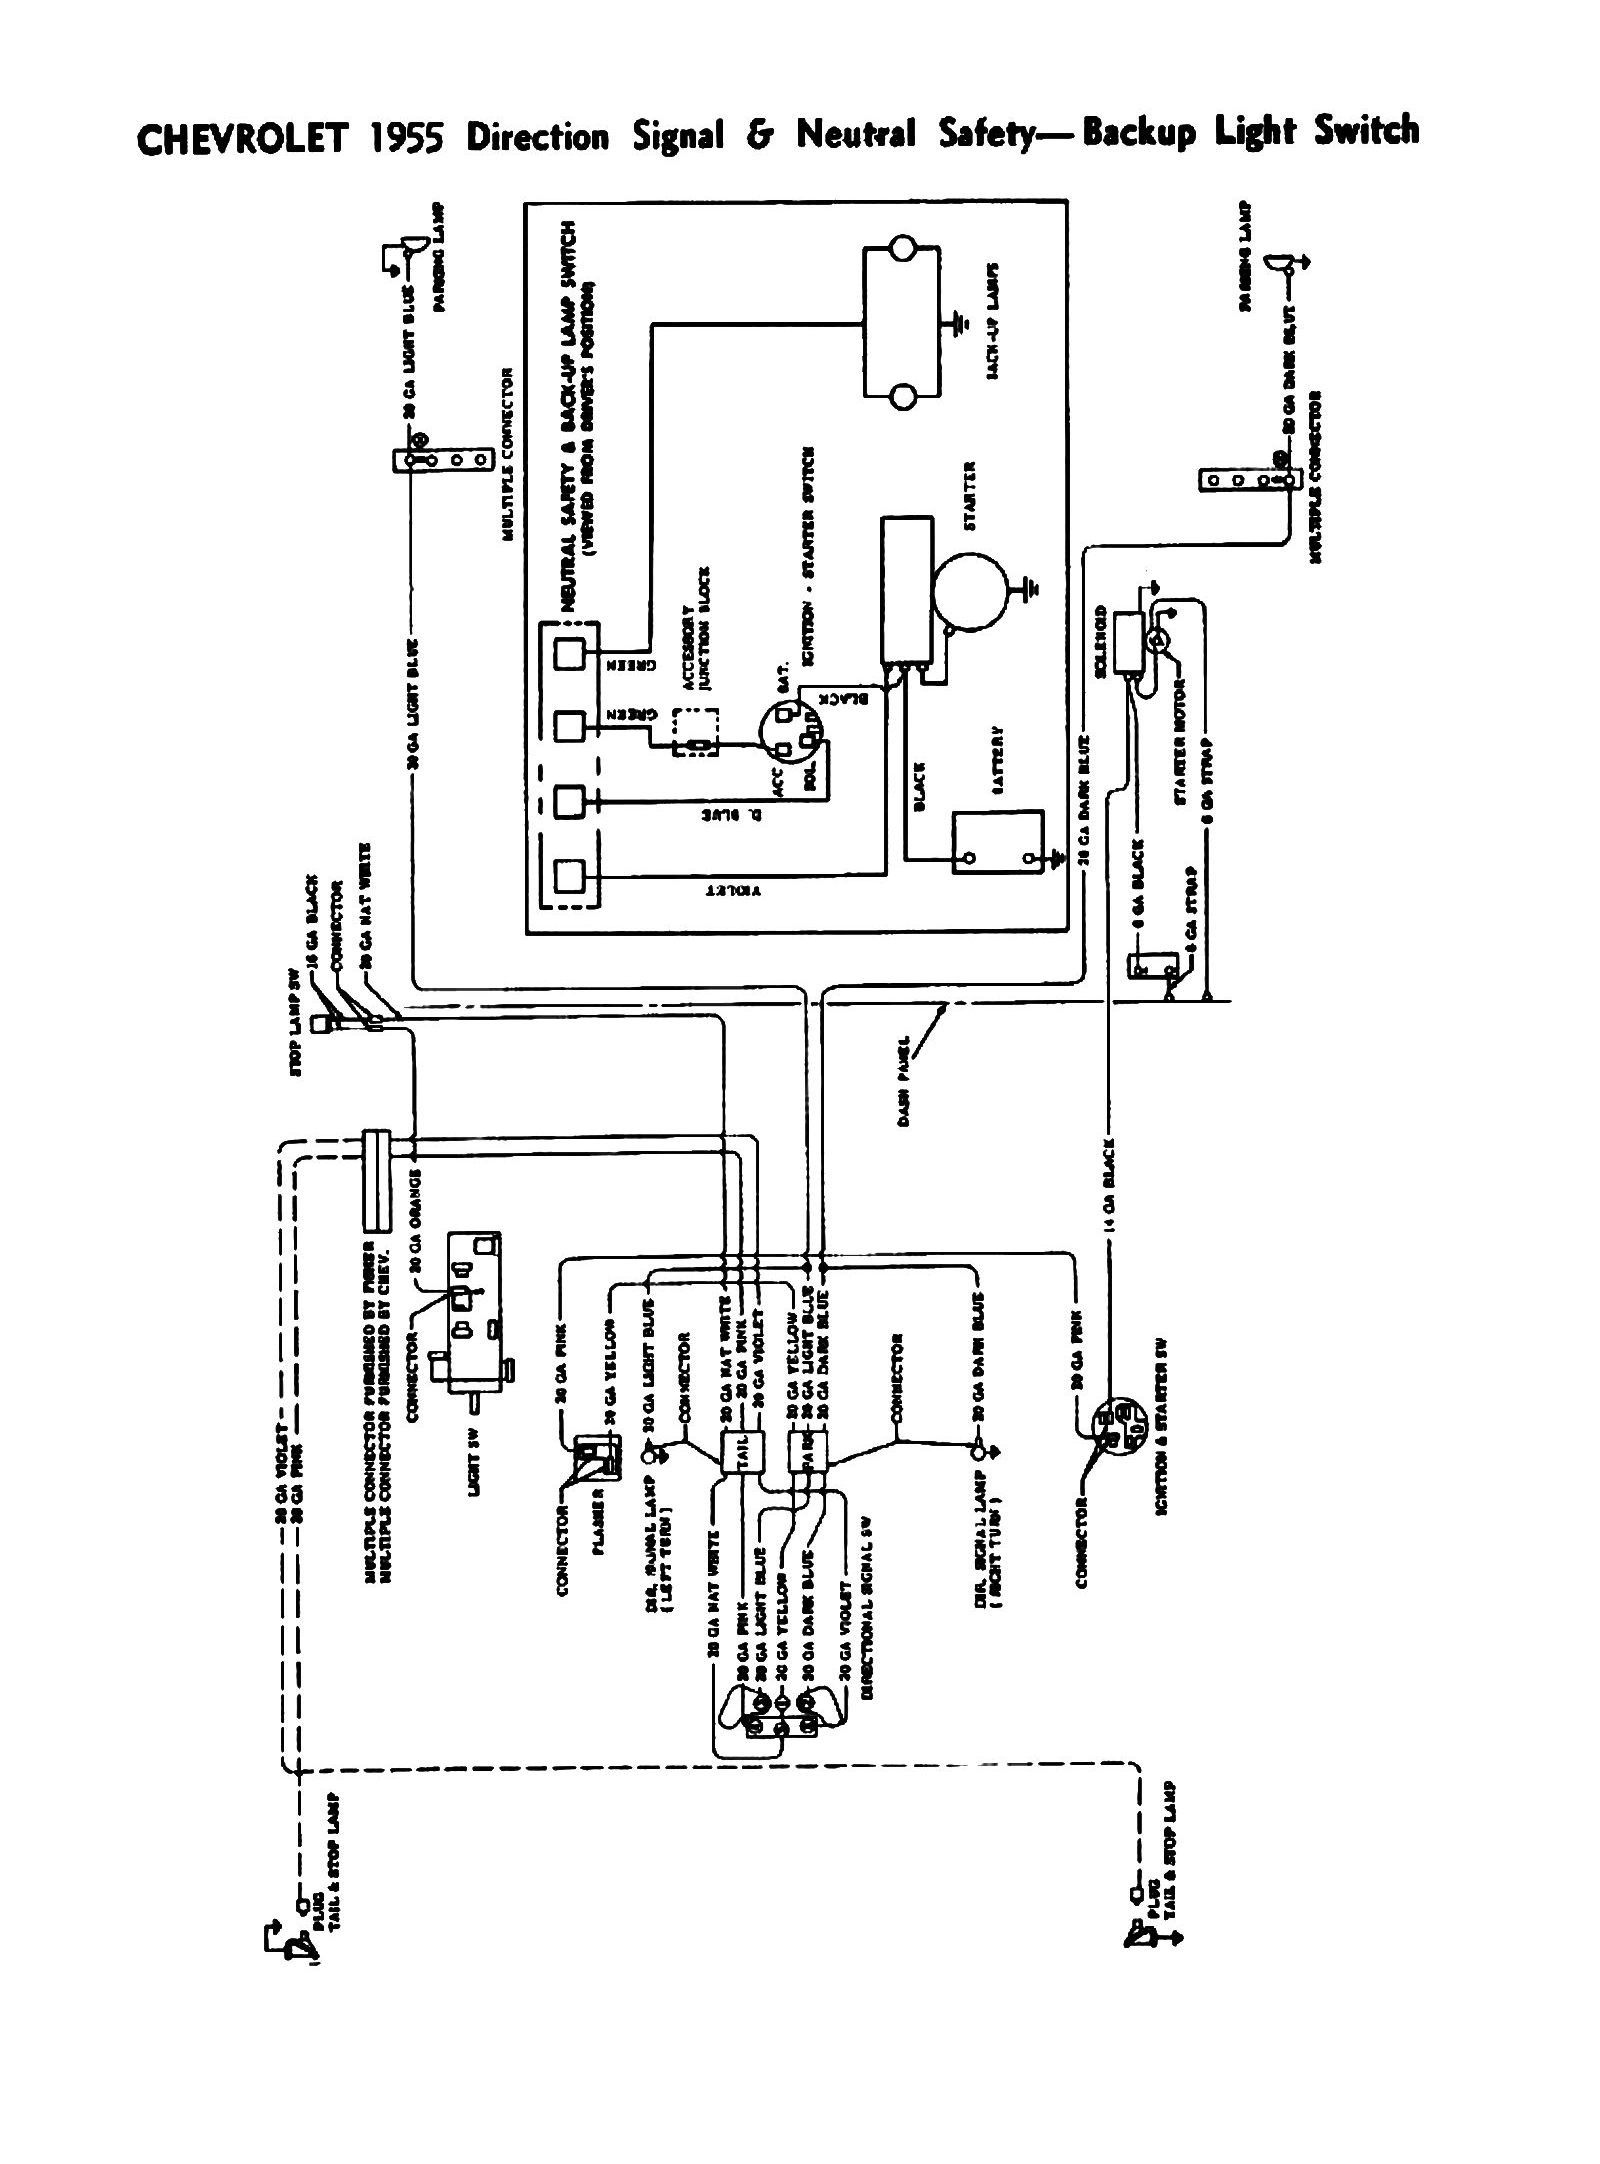 1957 chevy truck wiring diagram 1957 chevy painless wiring diagram 57 chevy painless wiring diagram | wiring diagram